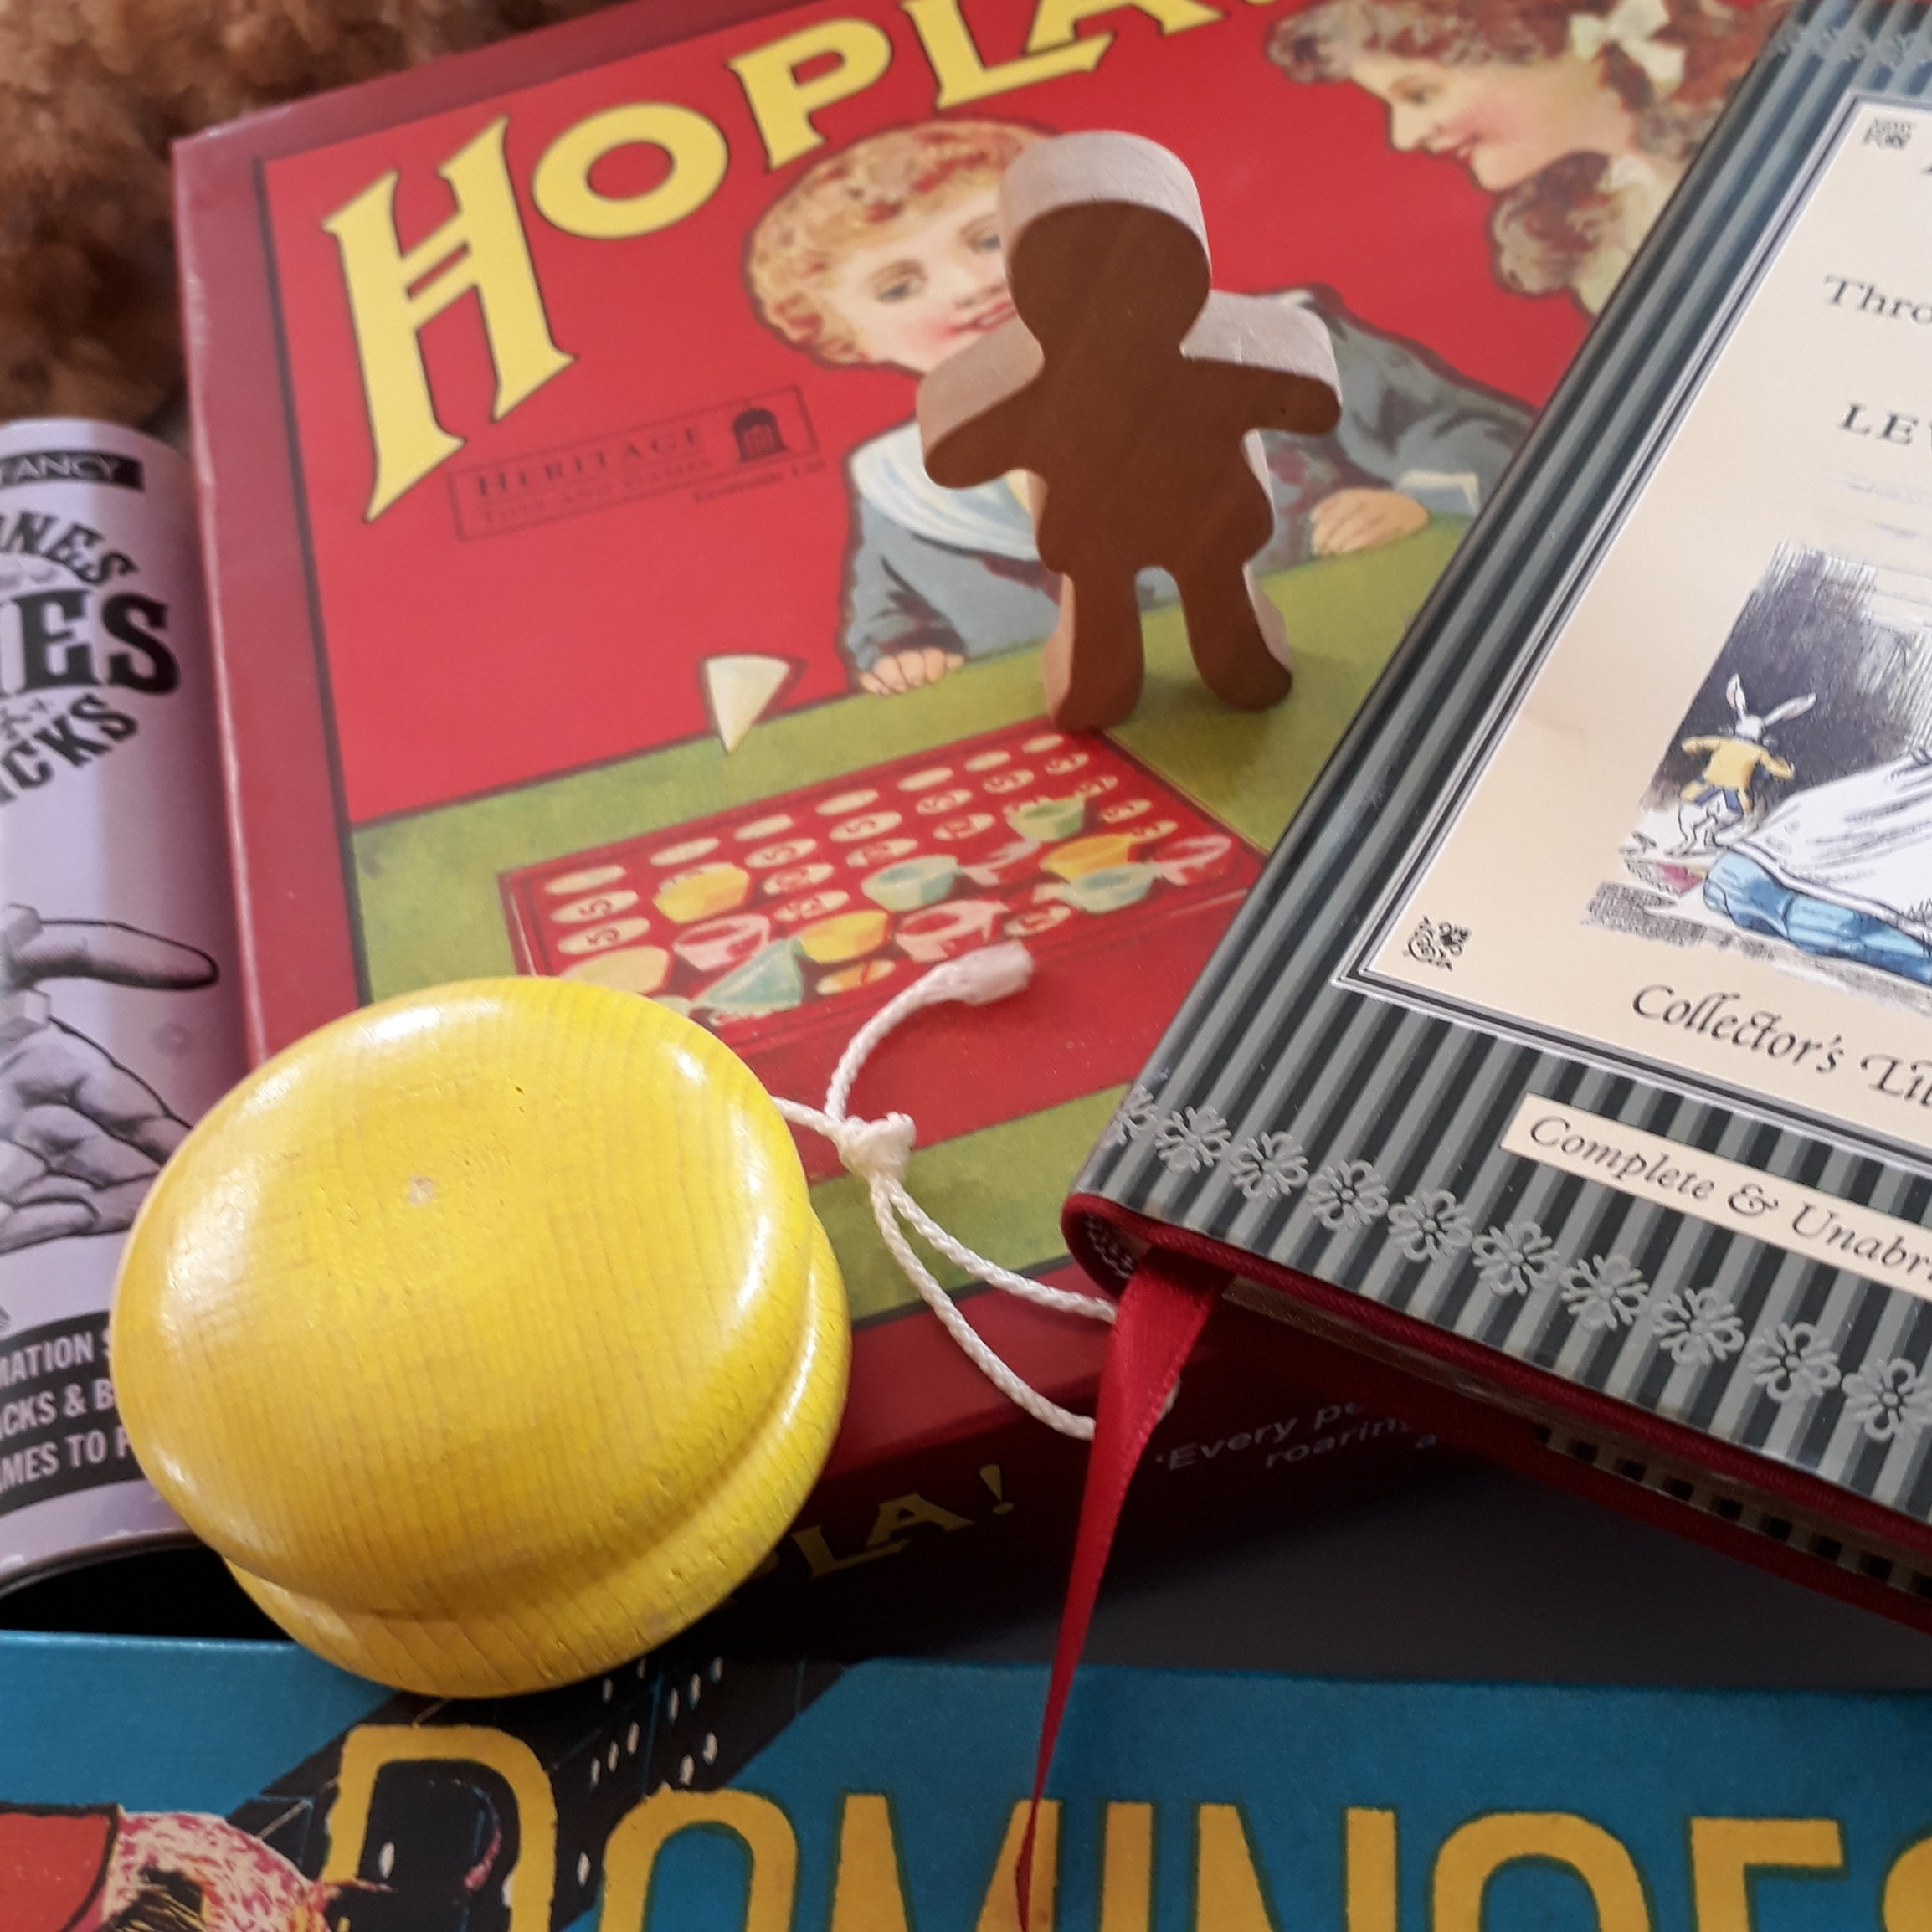 Reminiscence - Reminiscence therapy is an effective and enjoyable way to connect with a person who has dementia. Stories for the Soul has two reminiscence handling collections which you can borrow from St. Peter's Resource Centre Rotherham and The Montgomery, Sheffield.